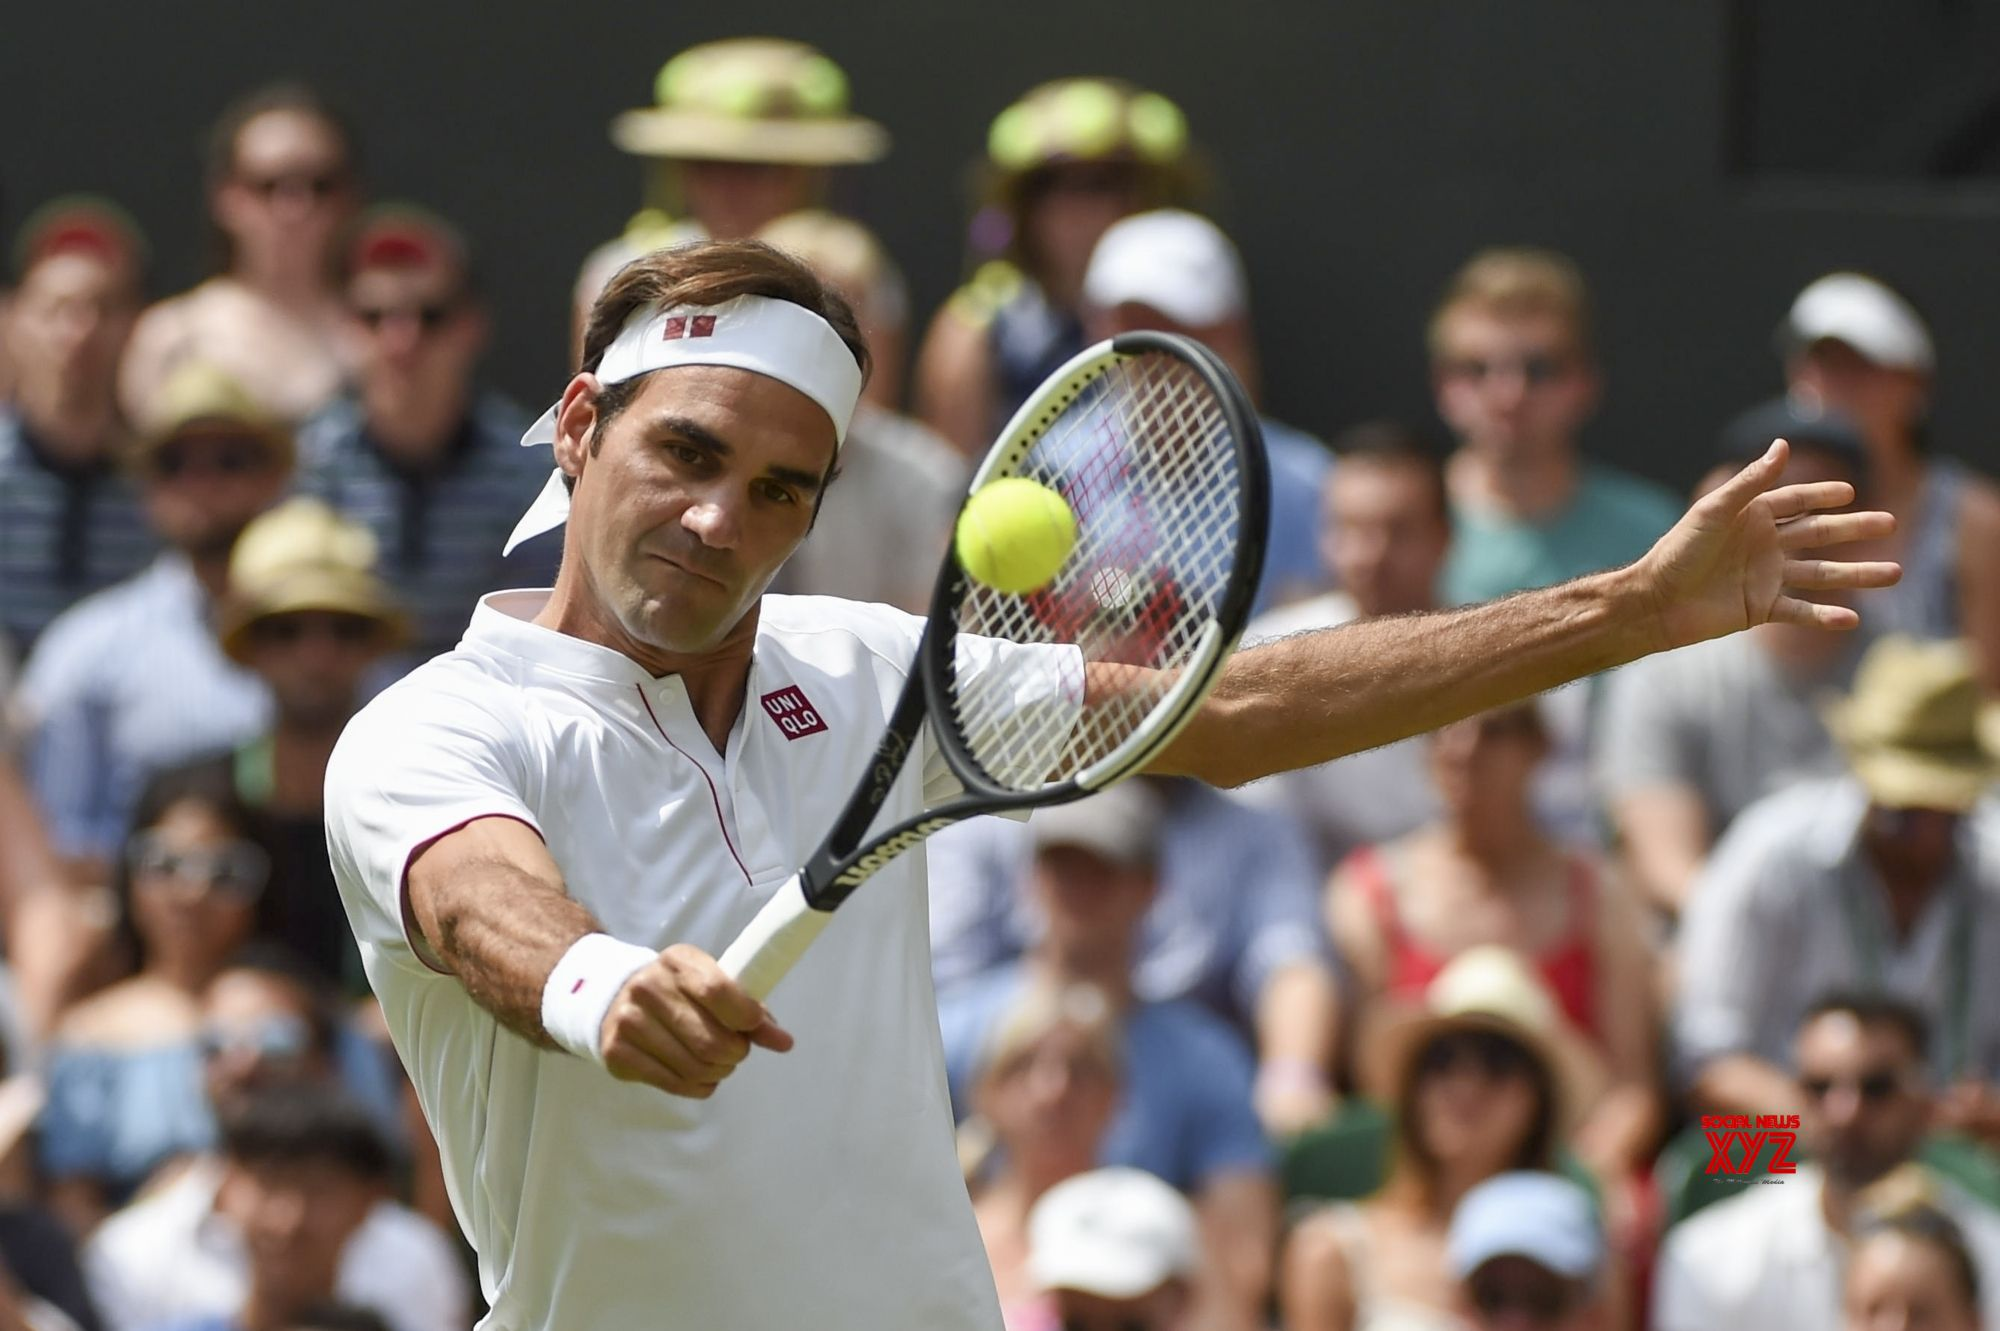 Anderson stuns defending champ Federer to enter Wimbledon semis